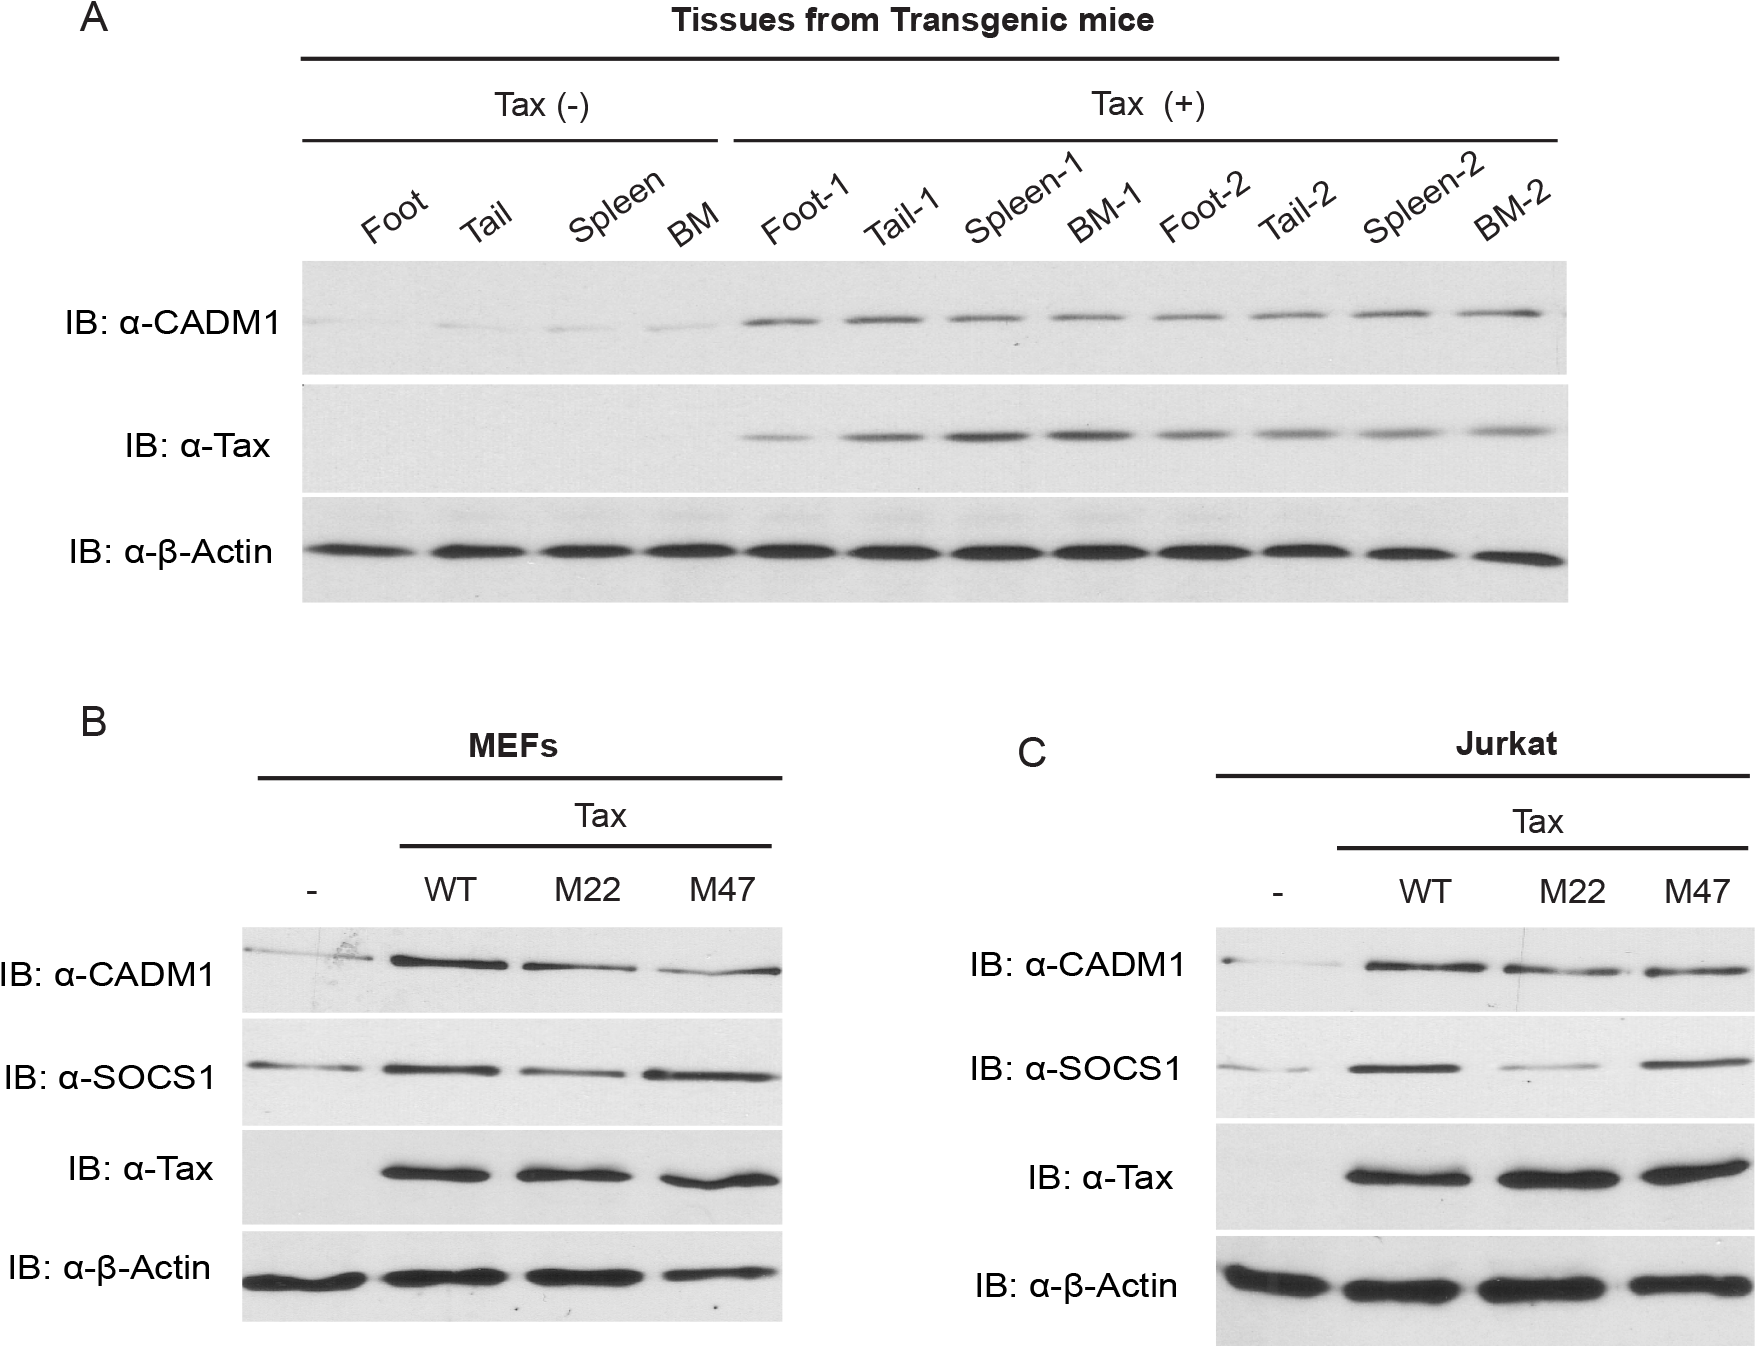 Tax induces CADM1 expression.